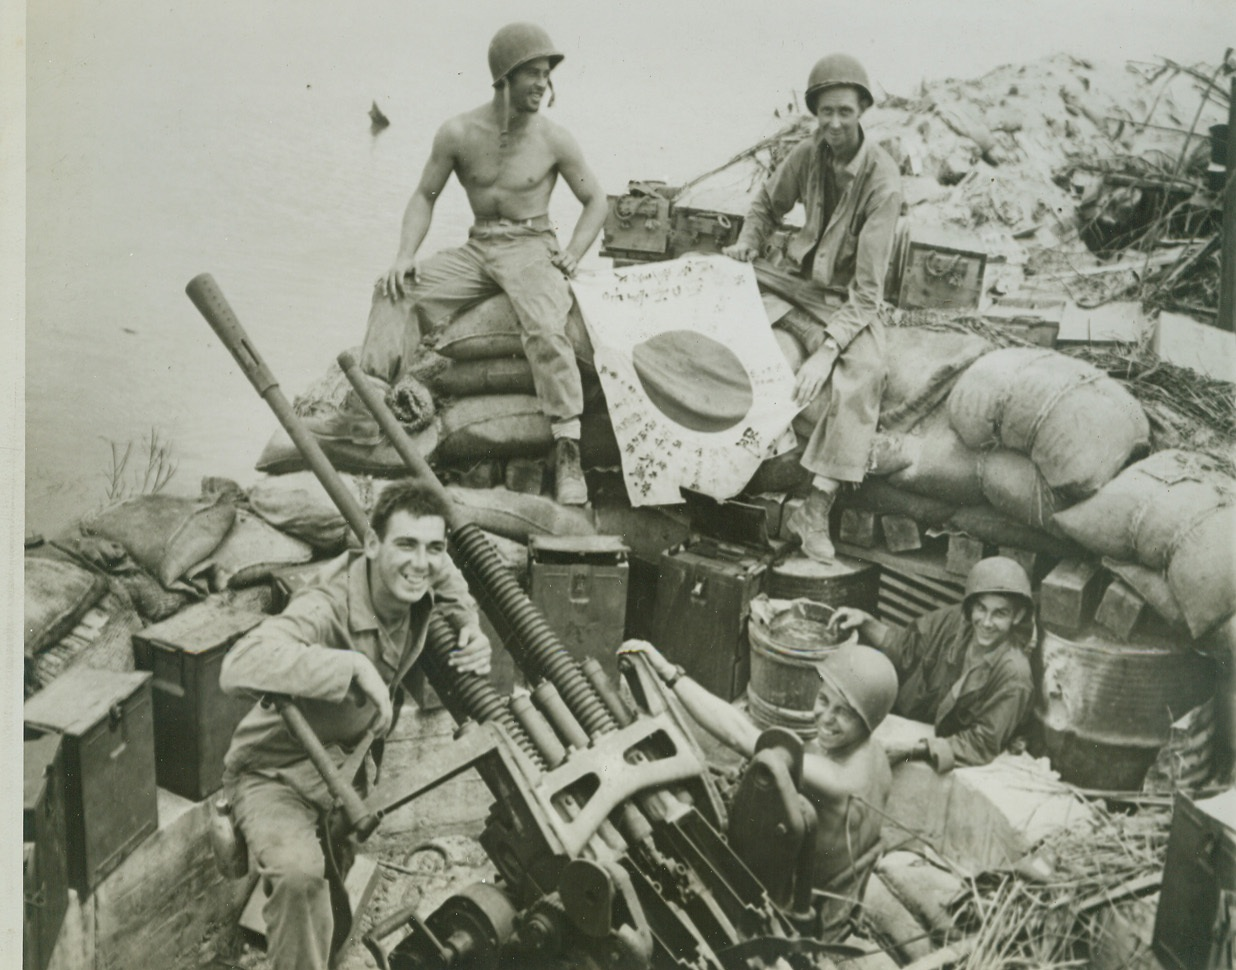 Jap Gun on Guam a Yank Prize, 8/2/1944. GUAM -- Useless now except as a memento of action gone by is this captured Jap gun taken during the American assault of Piti, Jap Naval station at Guam. In the gun pit are Sgt. Joe A. Grimes, Groesbeck, Tex. (rear, left) and Cpl. James W. Redding, (rear, right), Atlanta, Ga., examining a Jap flag, while (left to right, front) Pfc. Joe Woolsey, Jerseyville, Ill.; Pfc. Warren Jordan, Newark, N.J.; and Pfc. Joe Gilles, LaCrosse Wis., exhibit the gun. Credit- WP-(ACME);